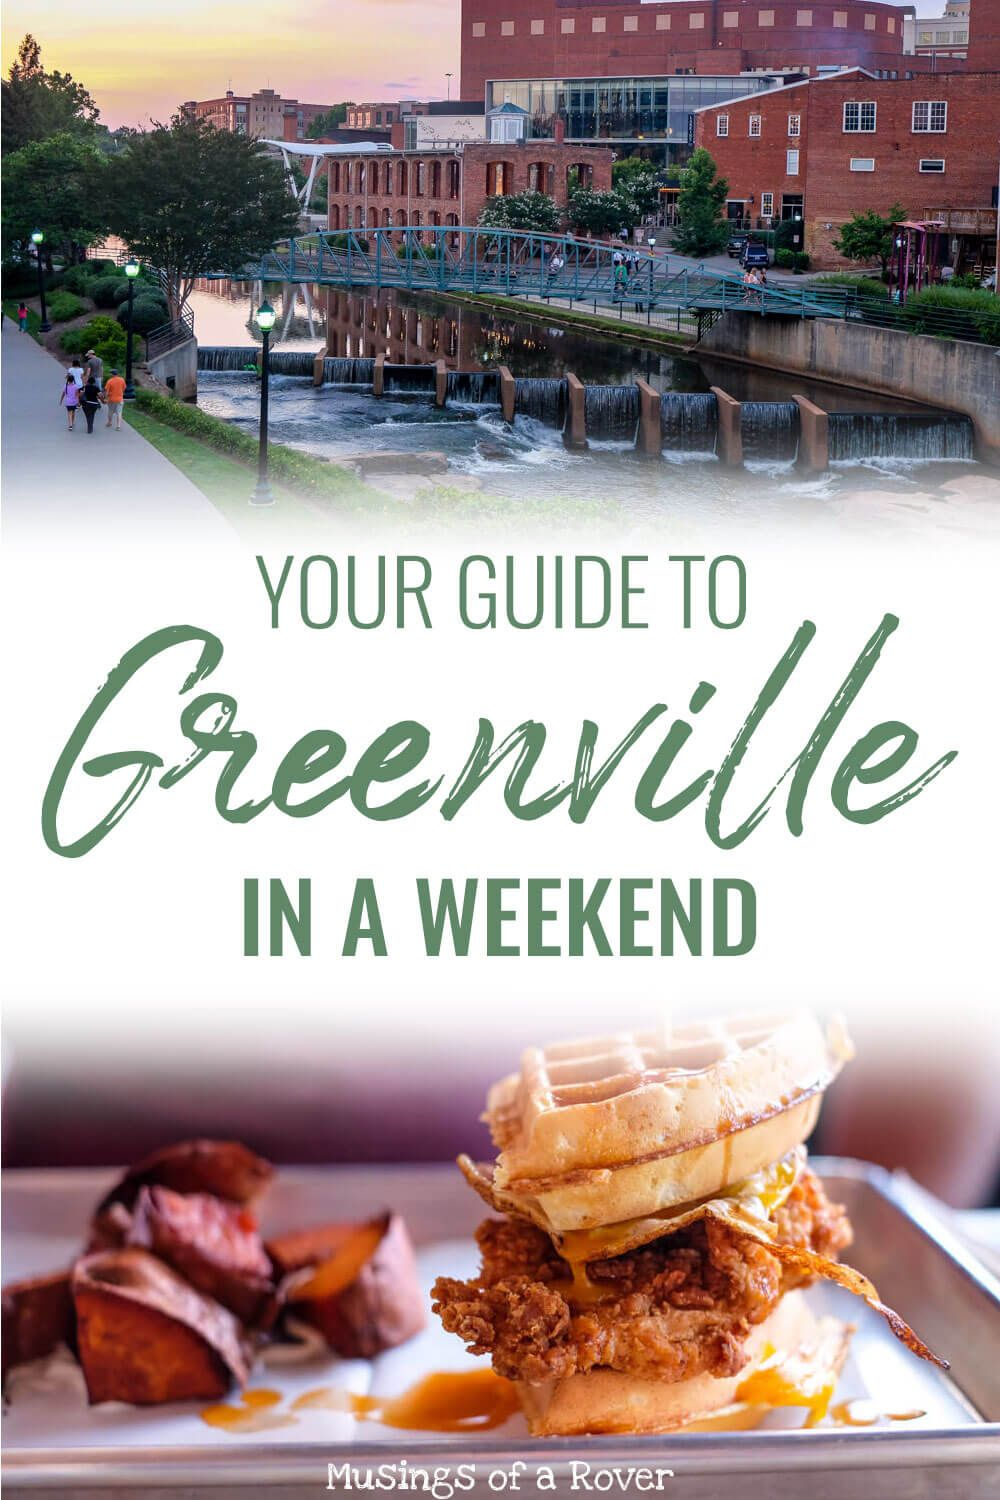 This local's guide to Greenville, SC will give you tips on what to do, where to eat, and what to drink during your weekend trip to this amazing city.